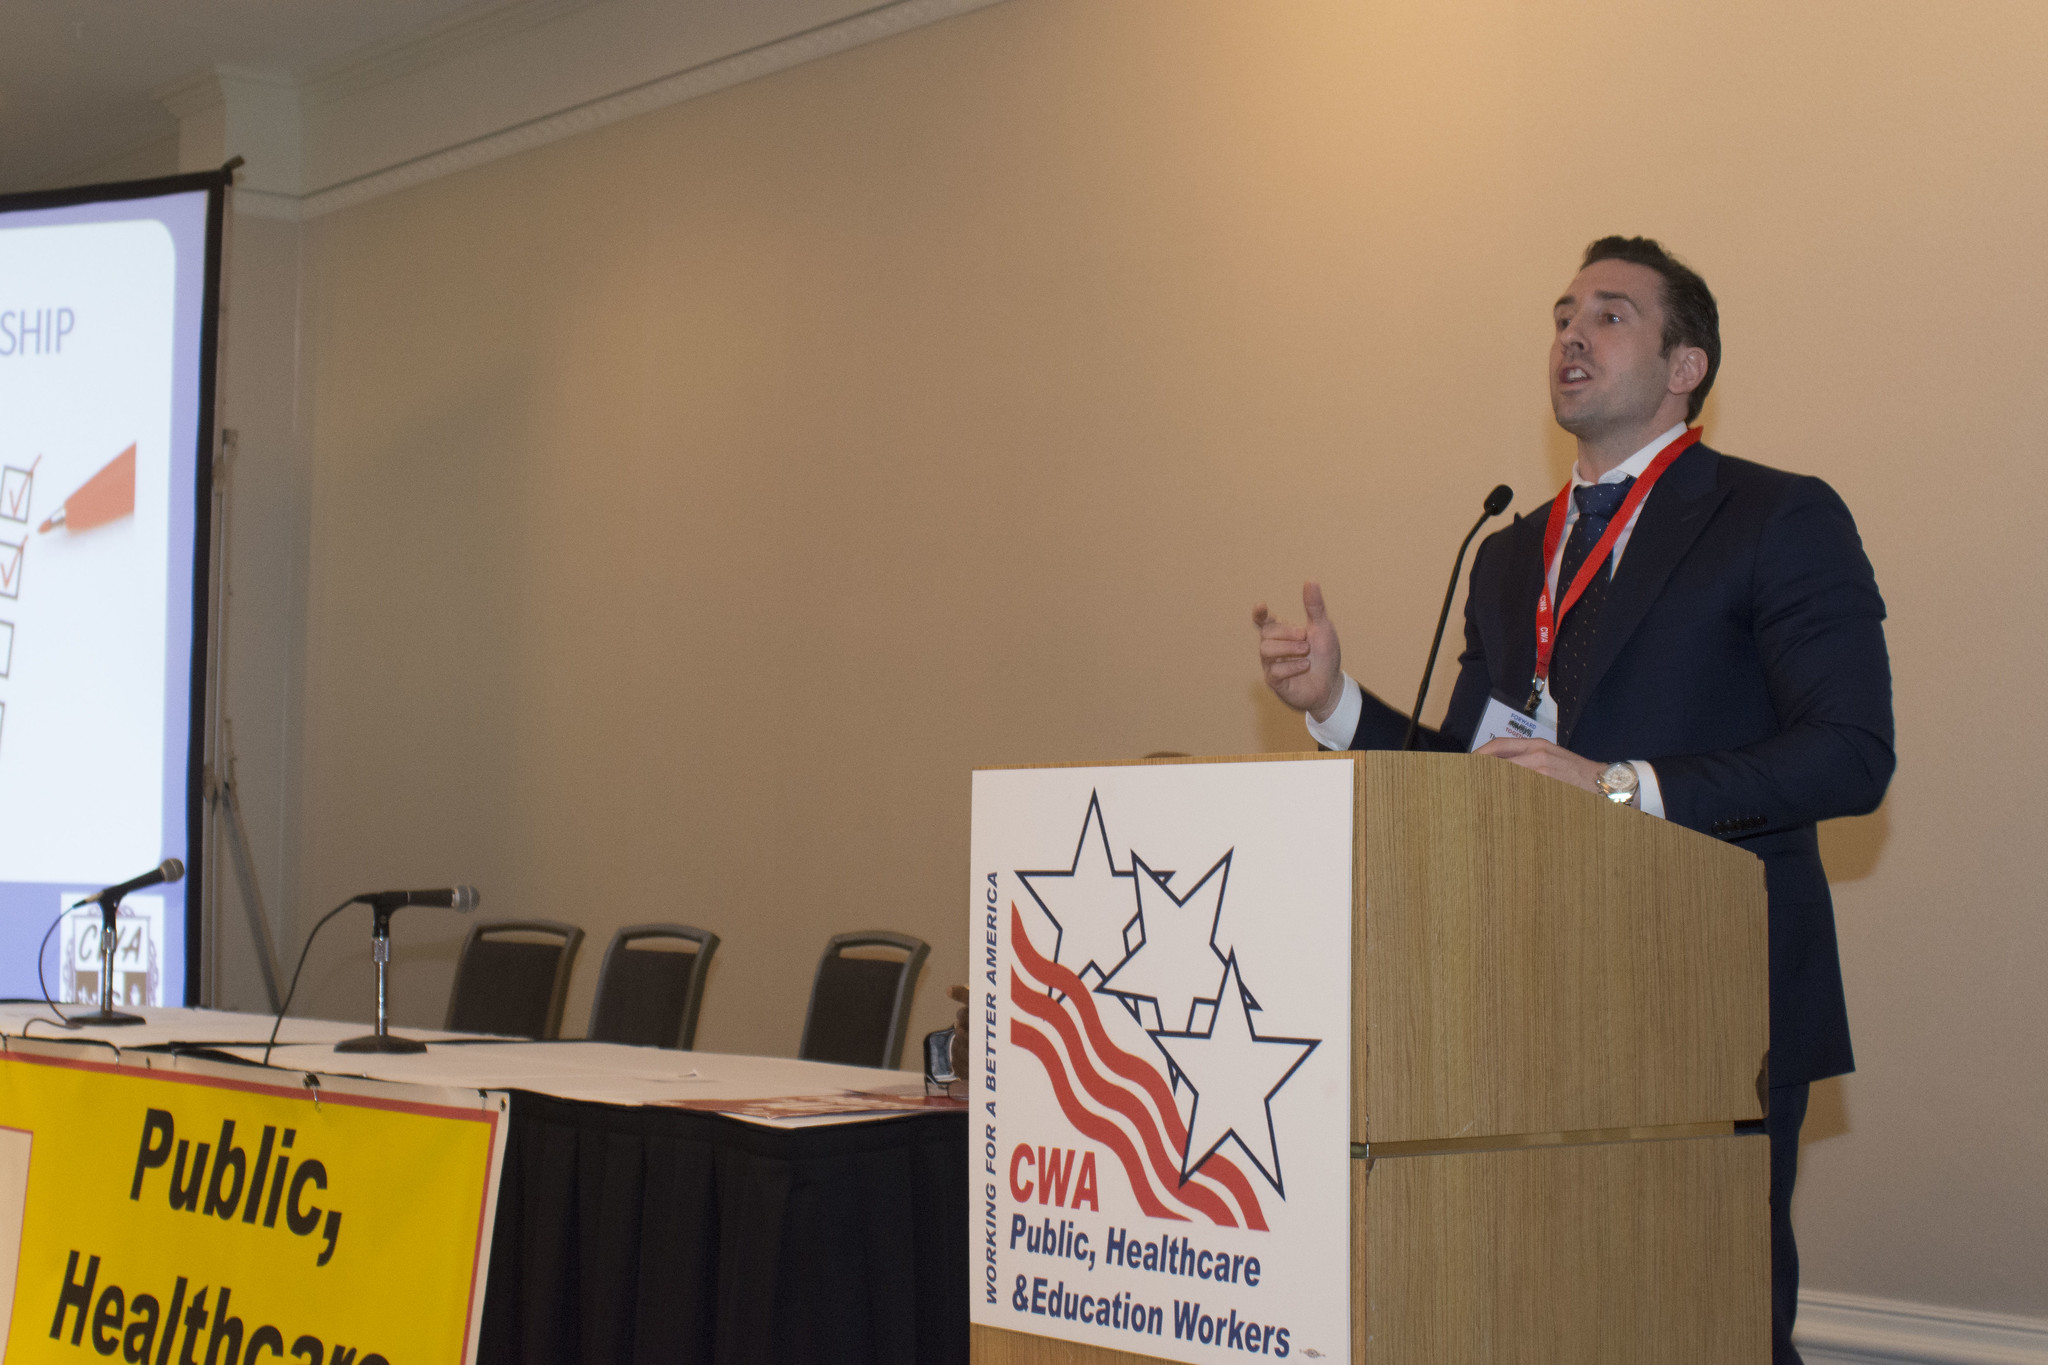 Thomas Giordano at the 2017 Public, Healthcare, and Education Workers Conference